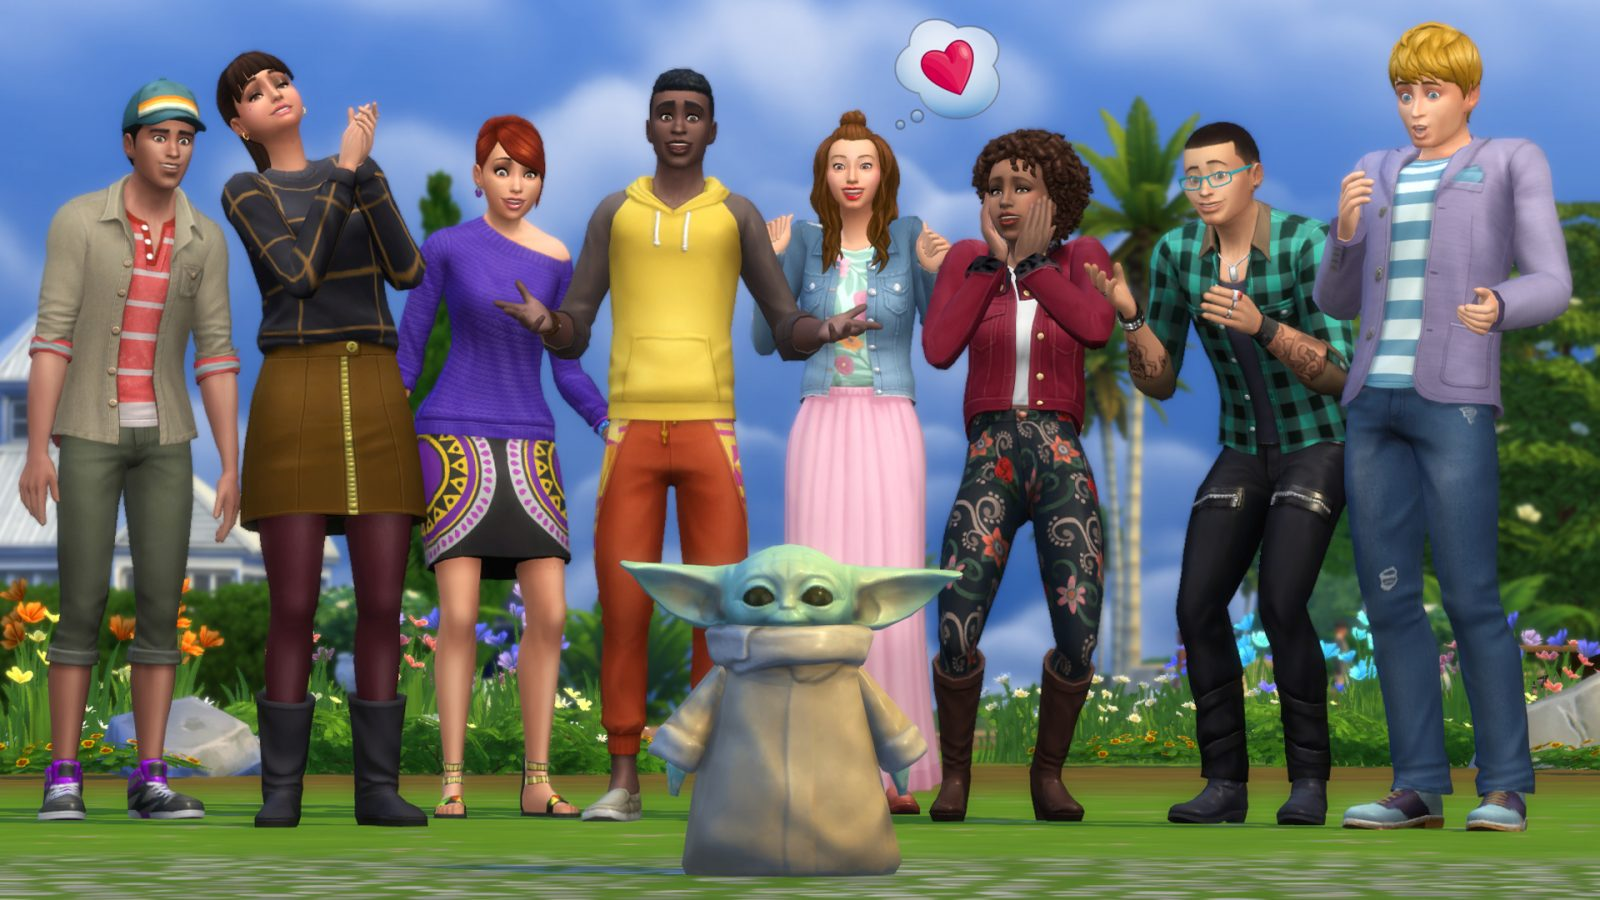 The Sims 4 is brave enough to call 'the Child' Baby Yoda